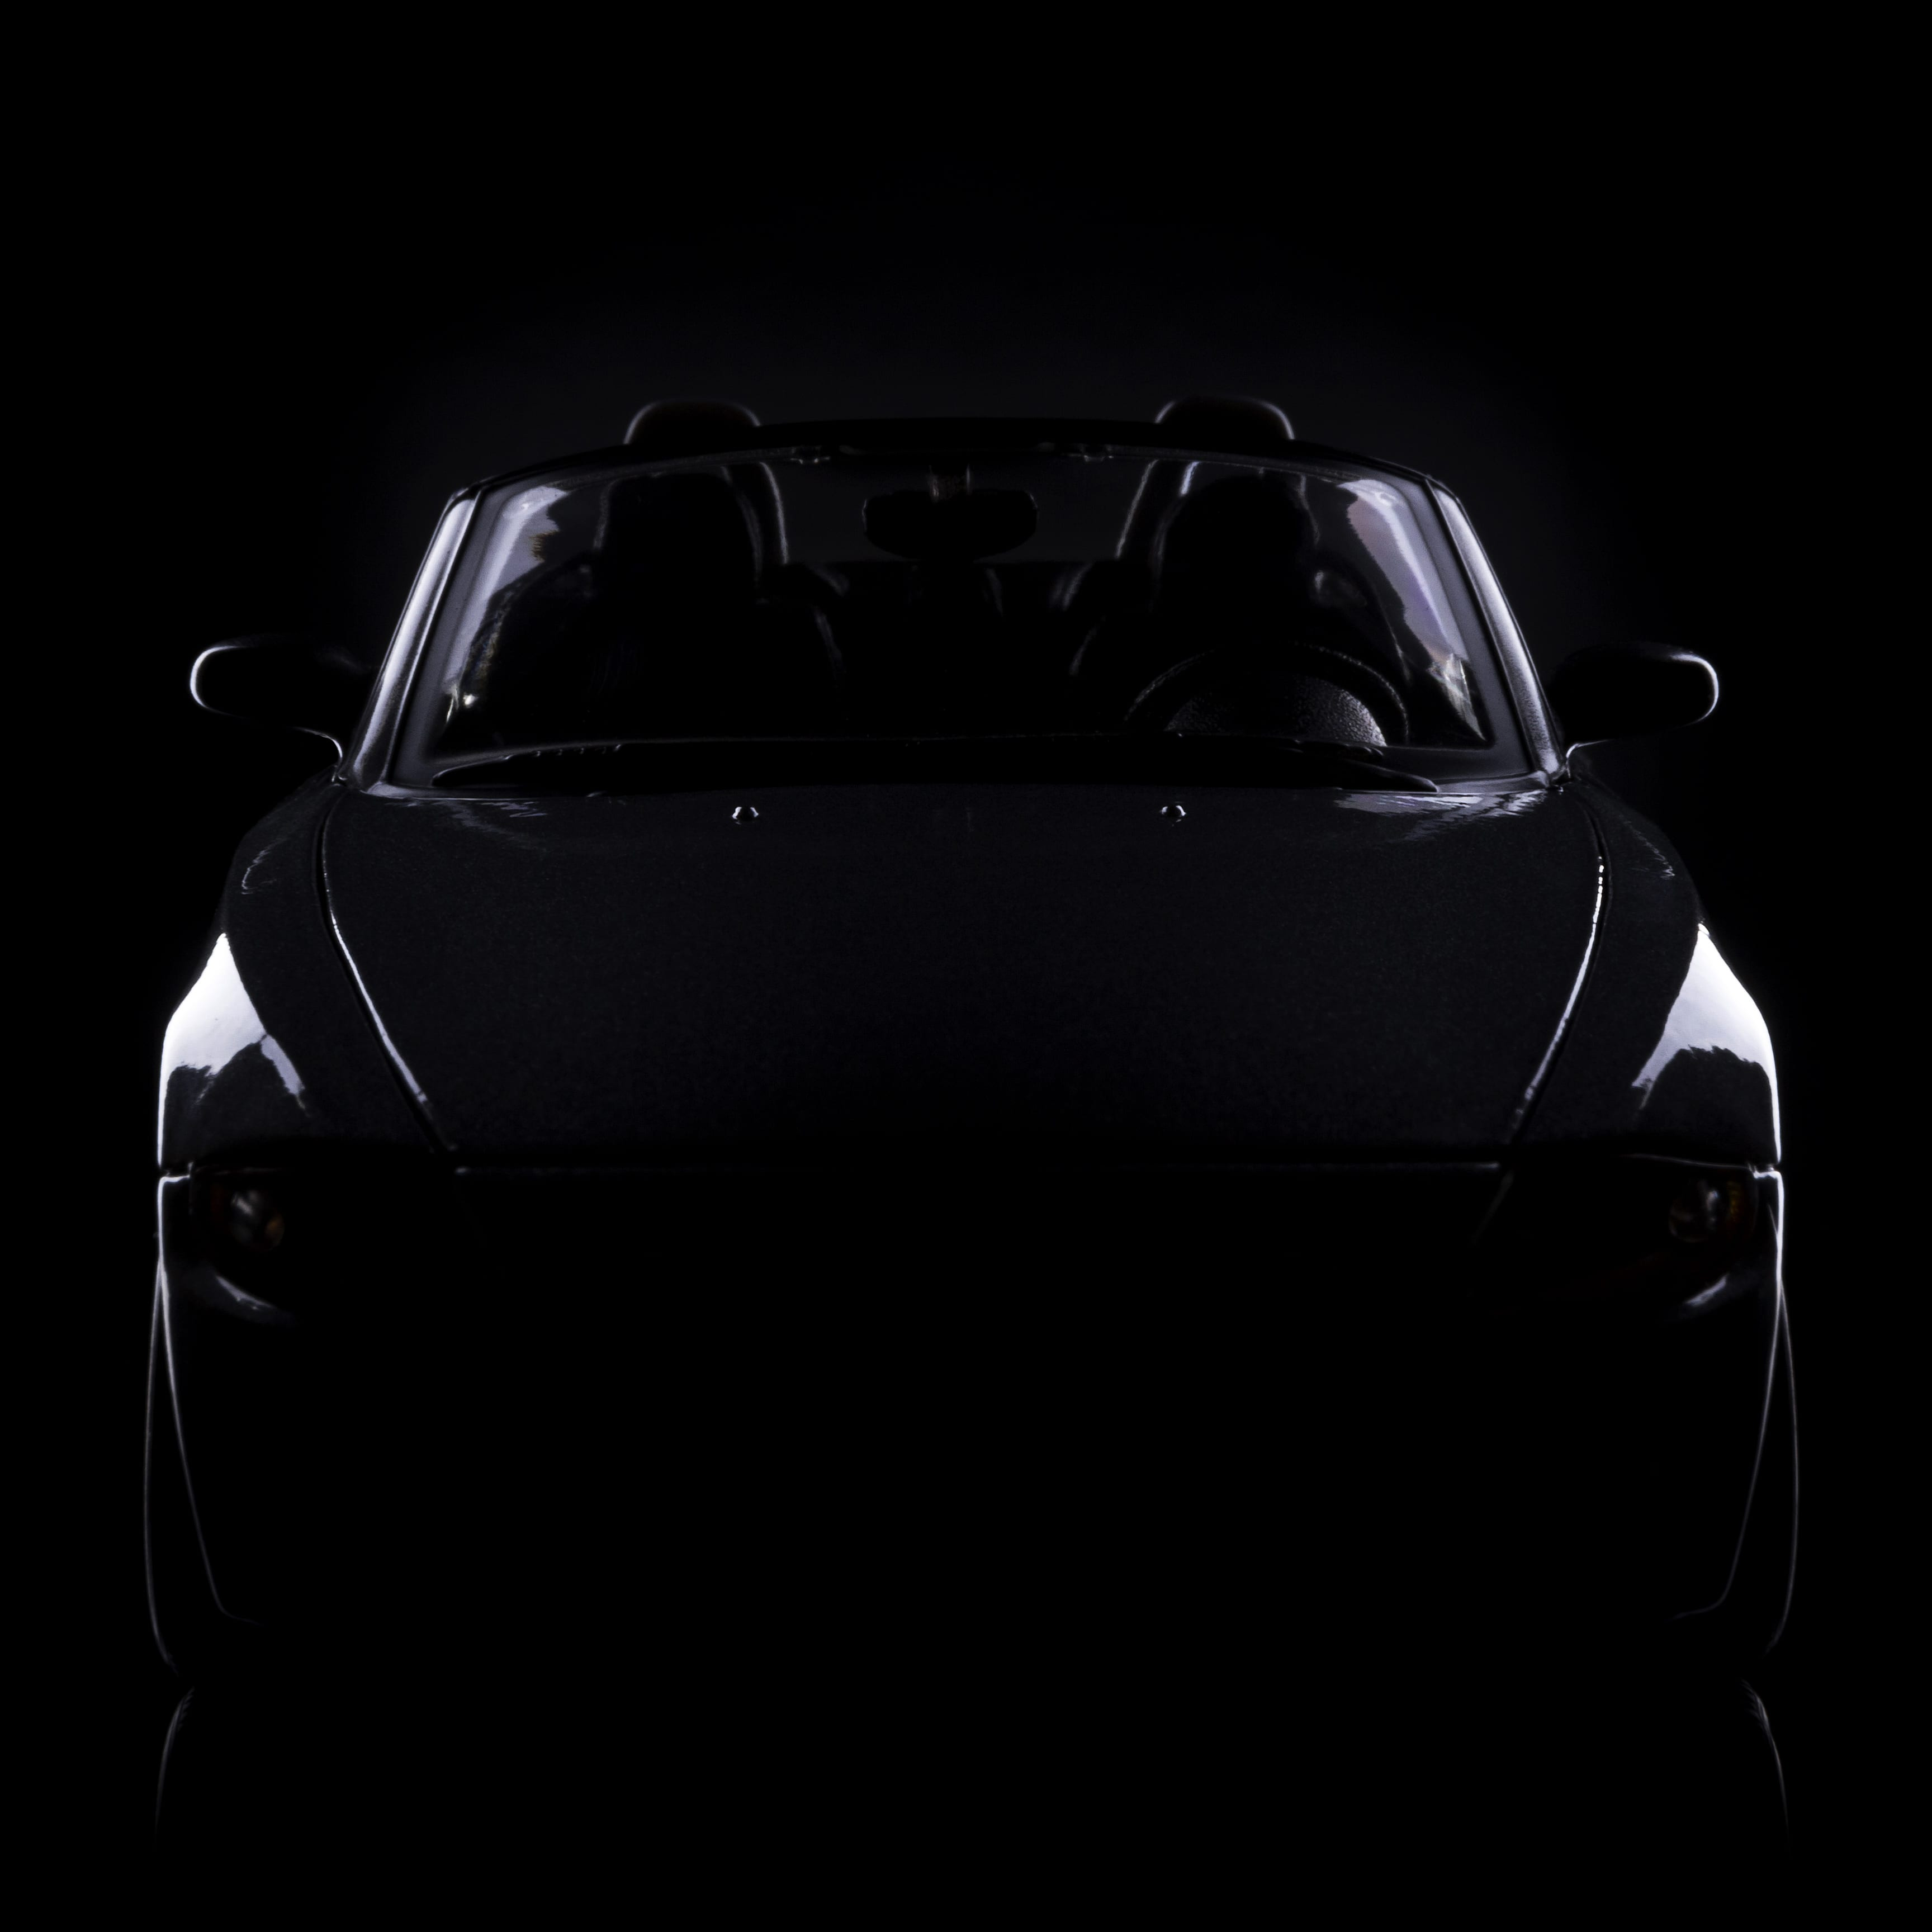 us dealer licensing front silhouette of a sports car